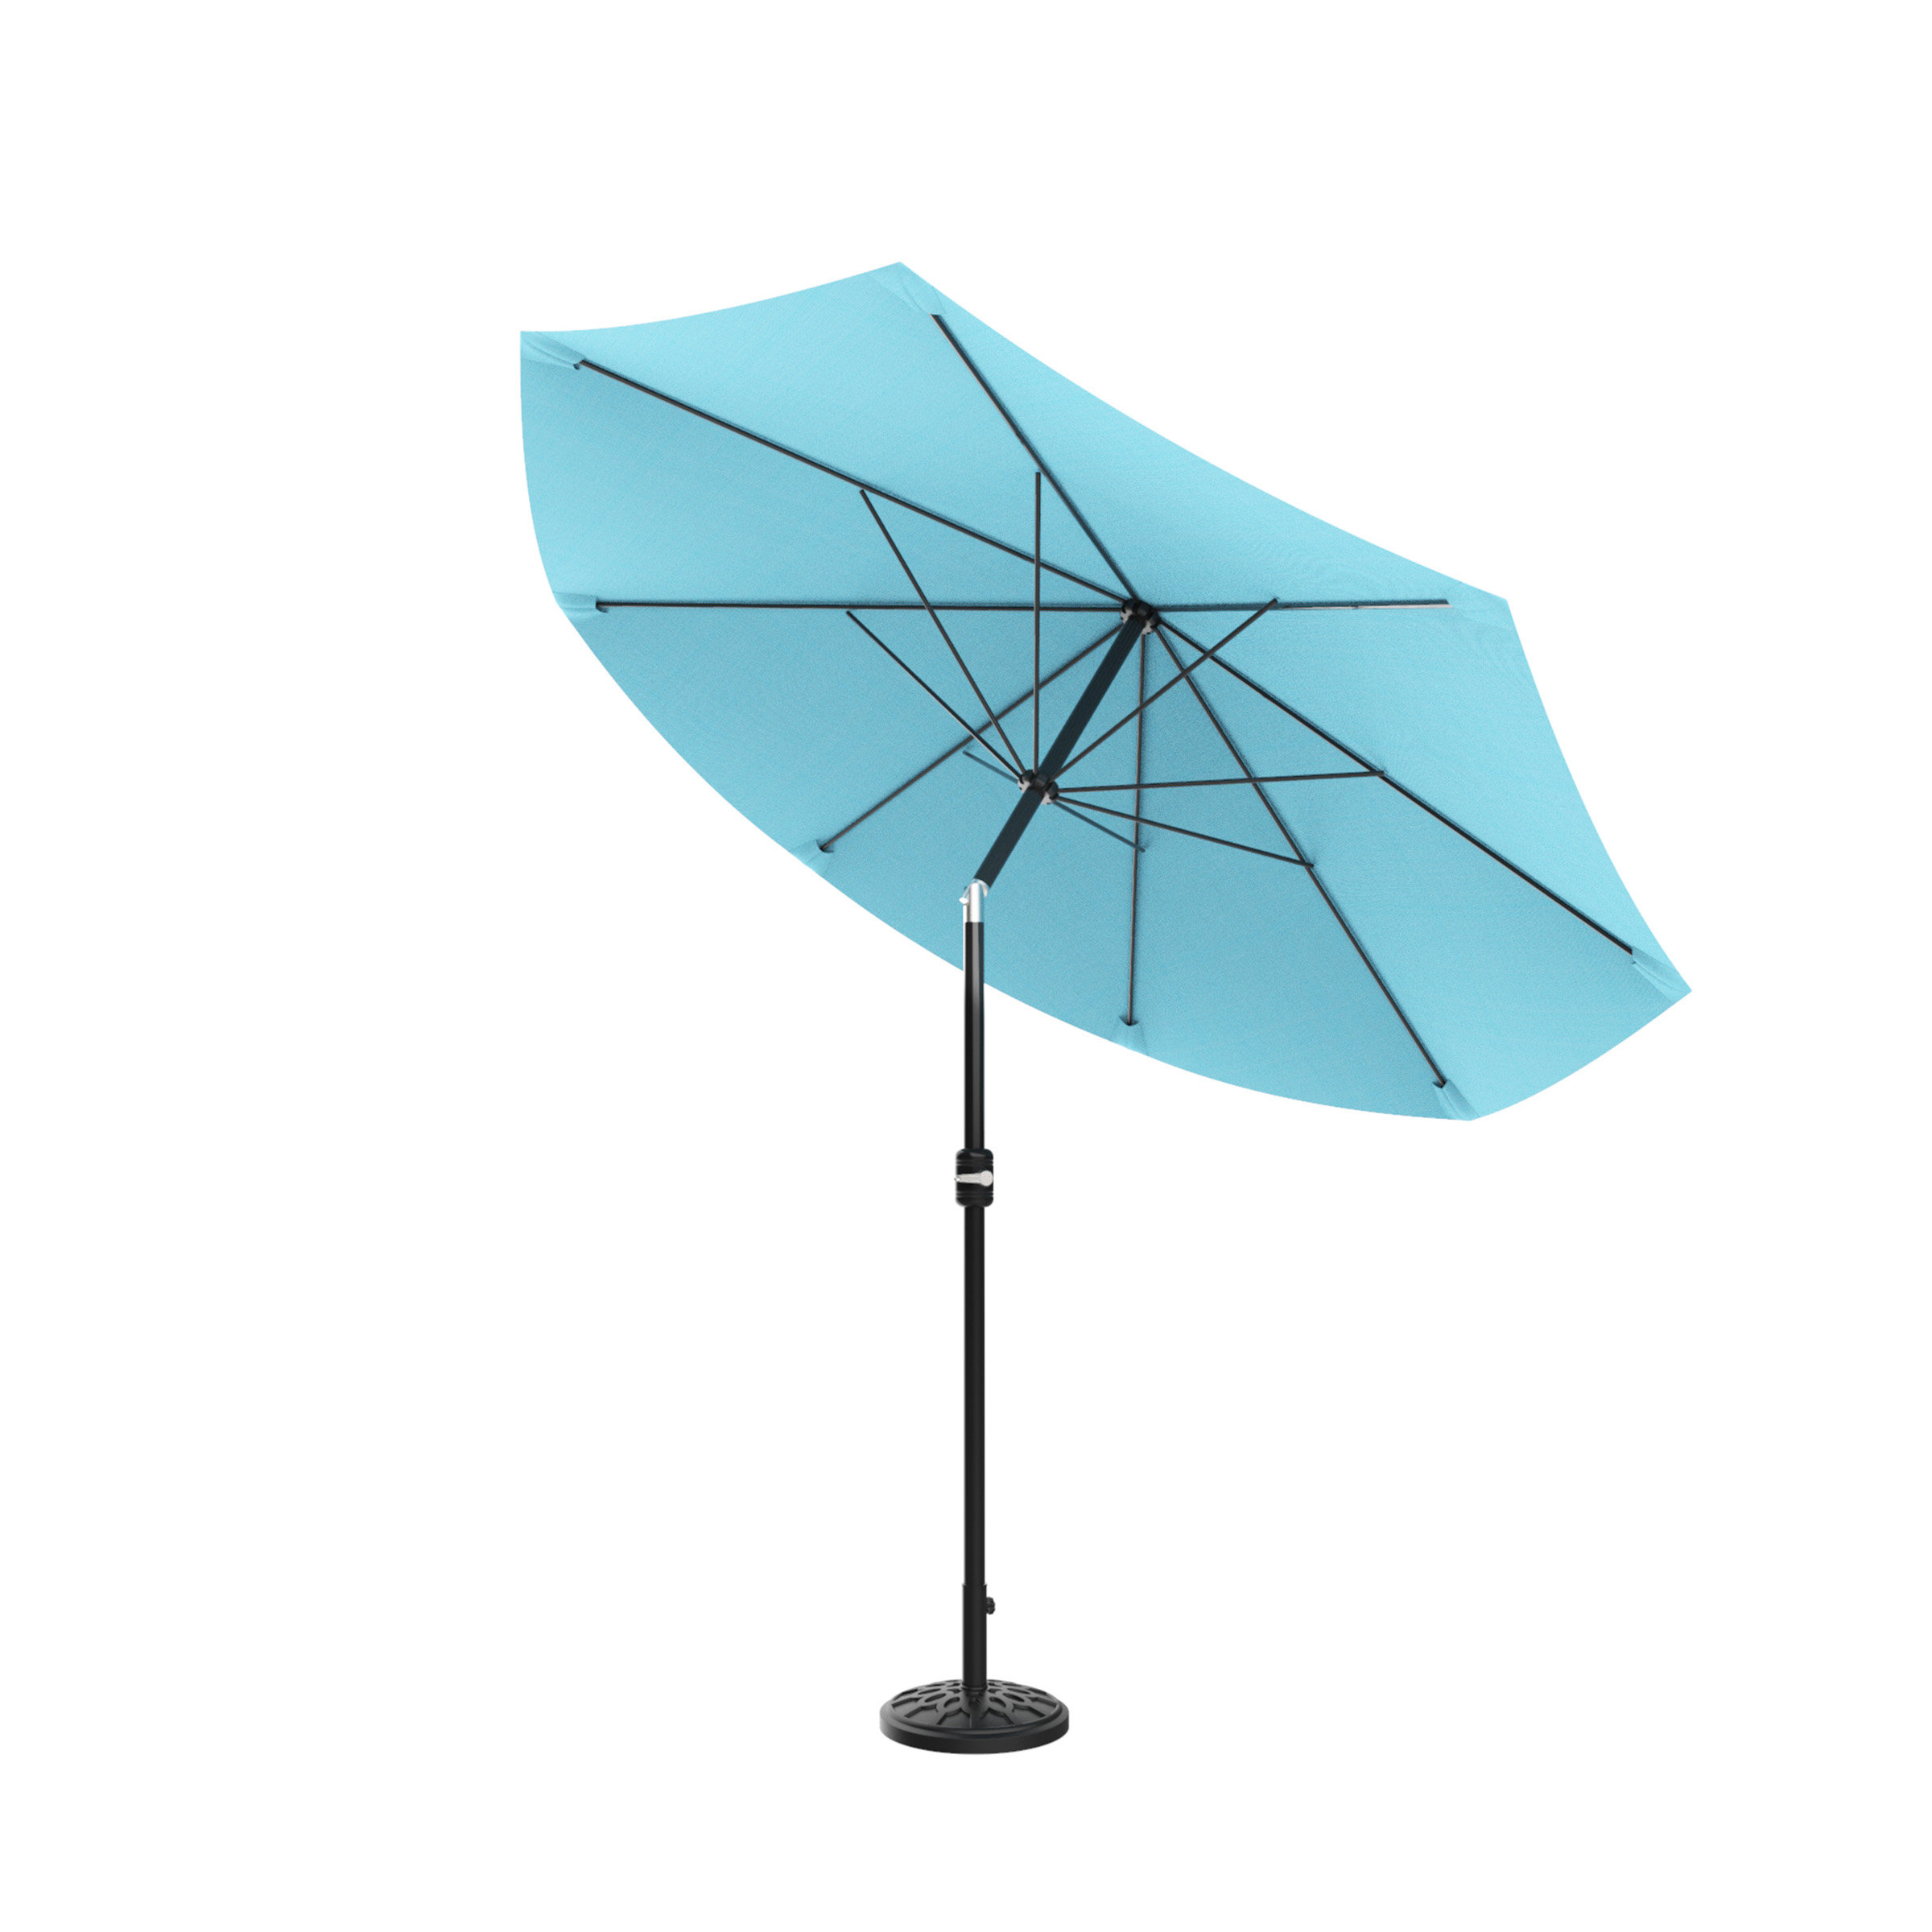 Kelton 10' Market Umbrella For Most Popular Cardine Market Umbrellas (View 13 of 20)